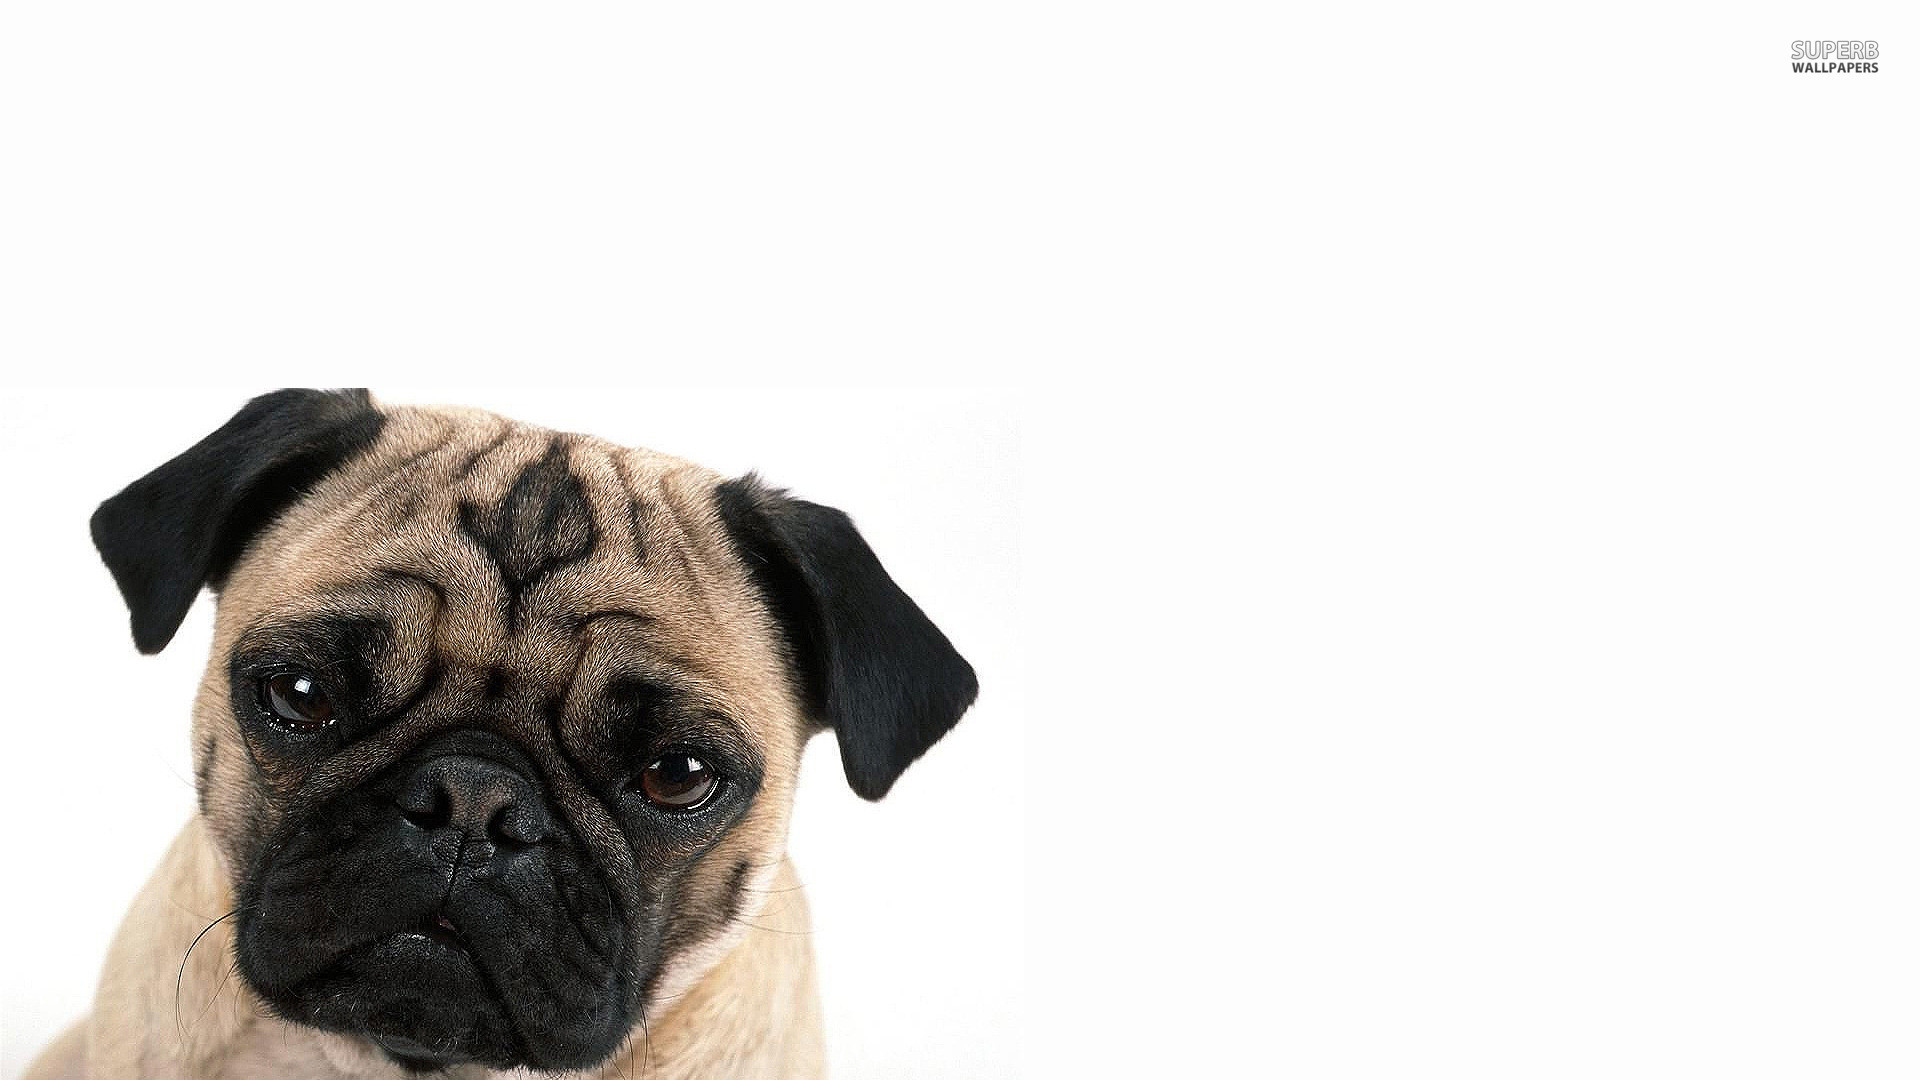 1920x1080 Funny Pug Wallpaper 22275 Source · 12 Cute Pug Wallpapers Backgrounds HD  Saveourpuppy com